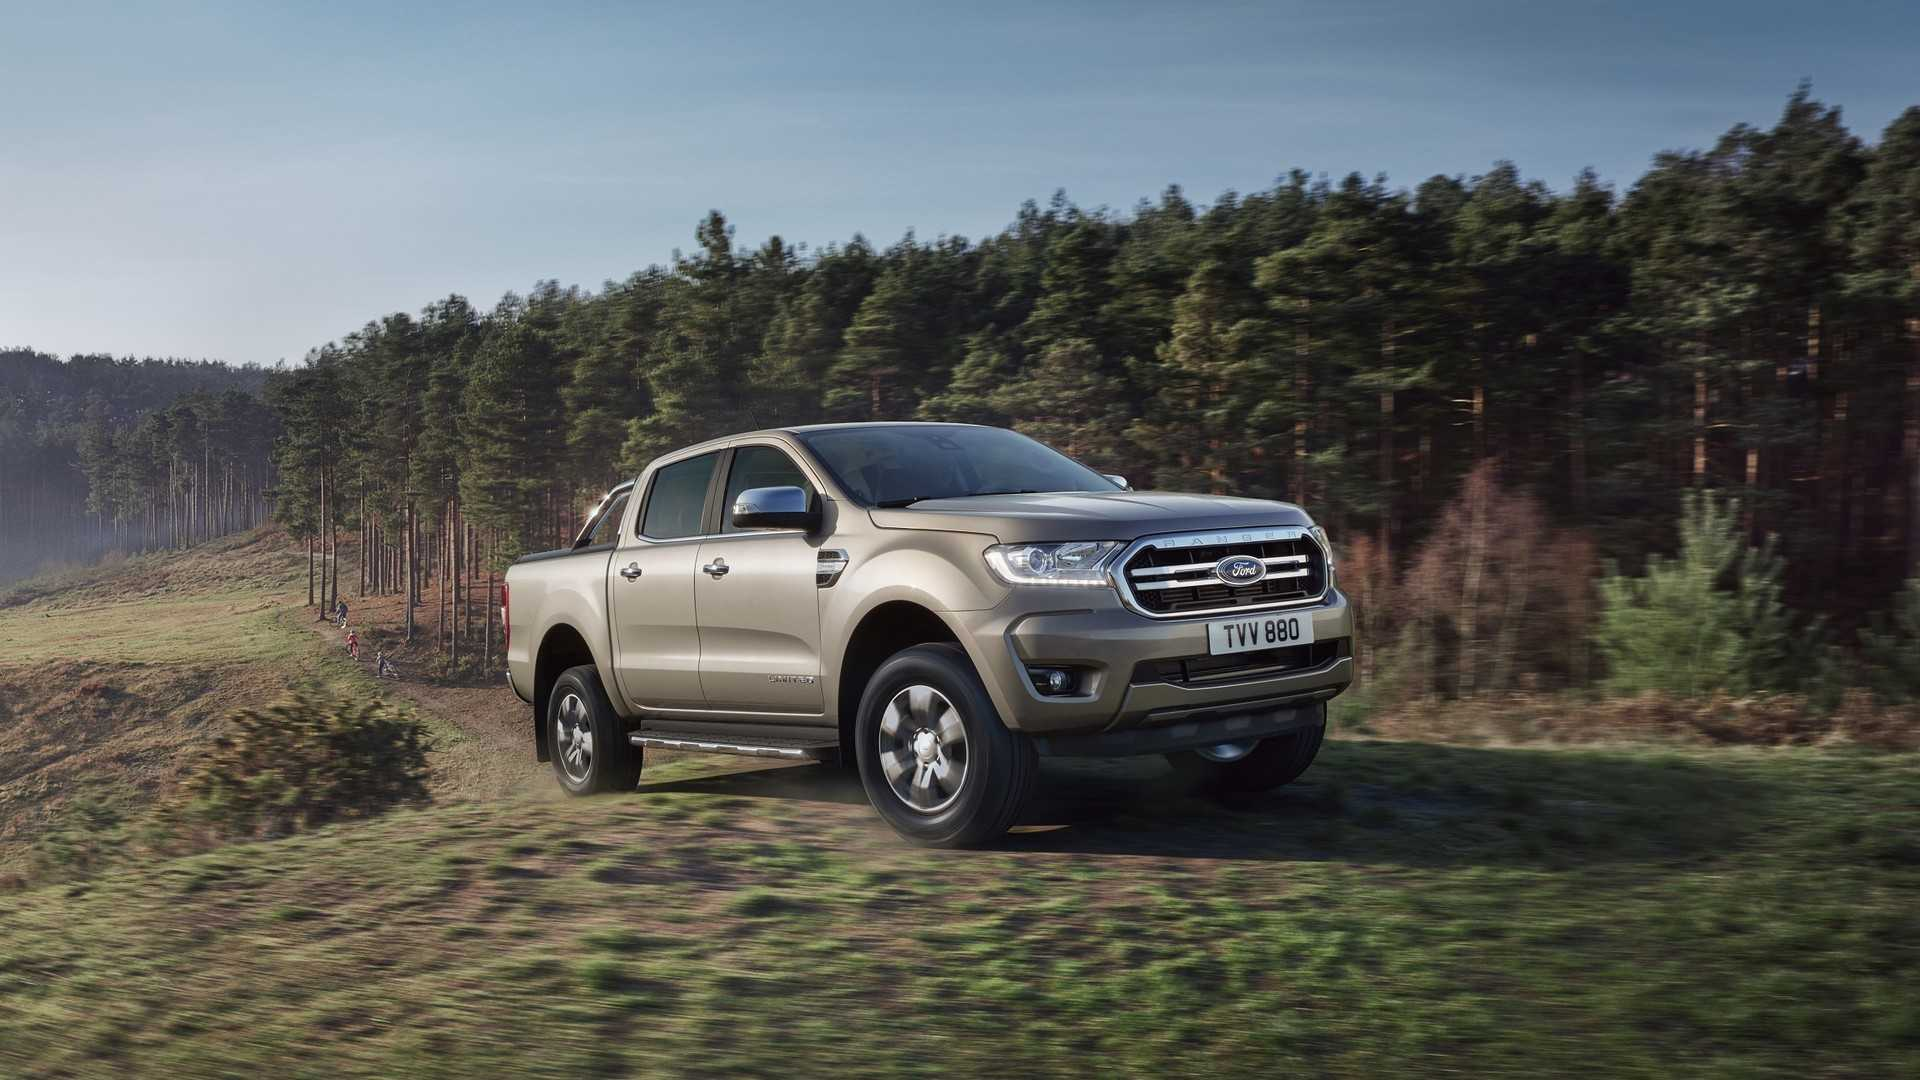 Ford Ranger Demonstrates Towing Power By Pulling 20 Caravans